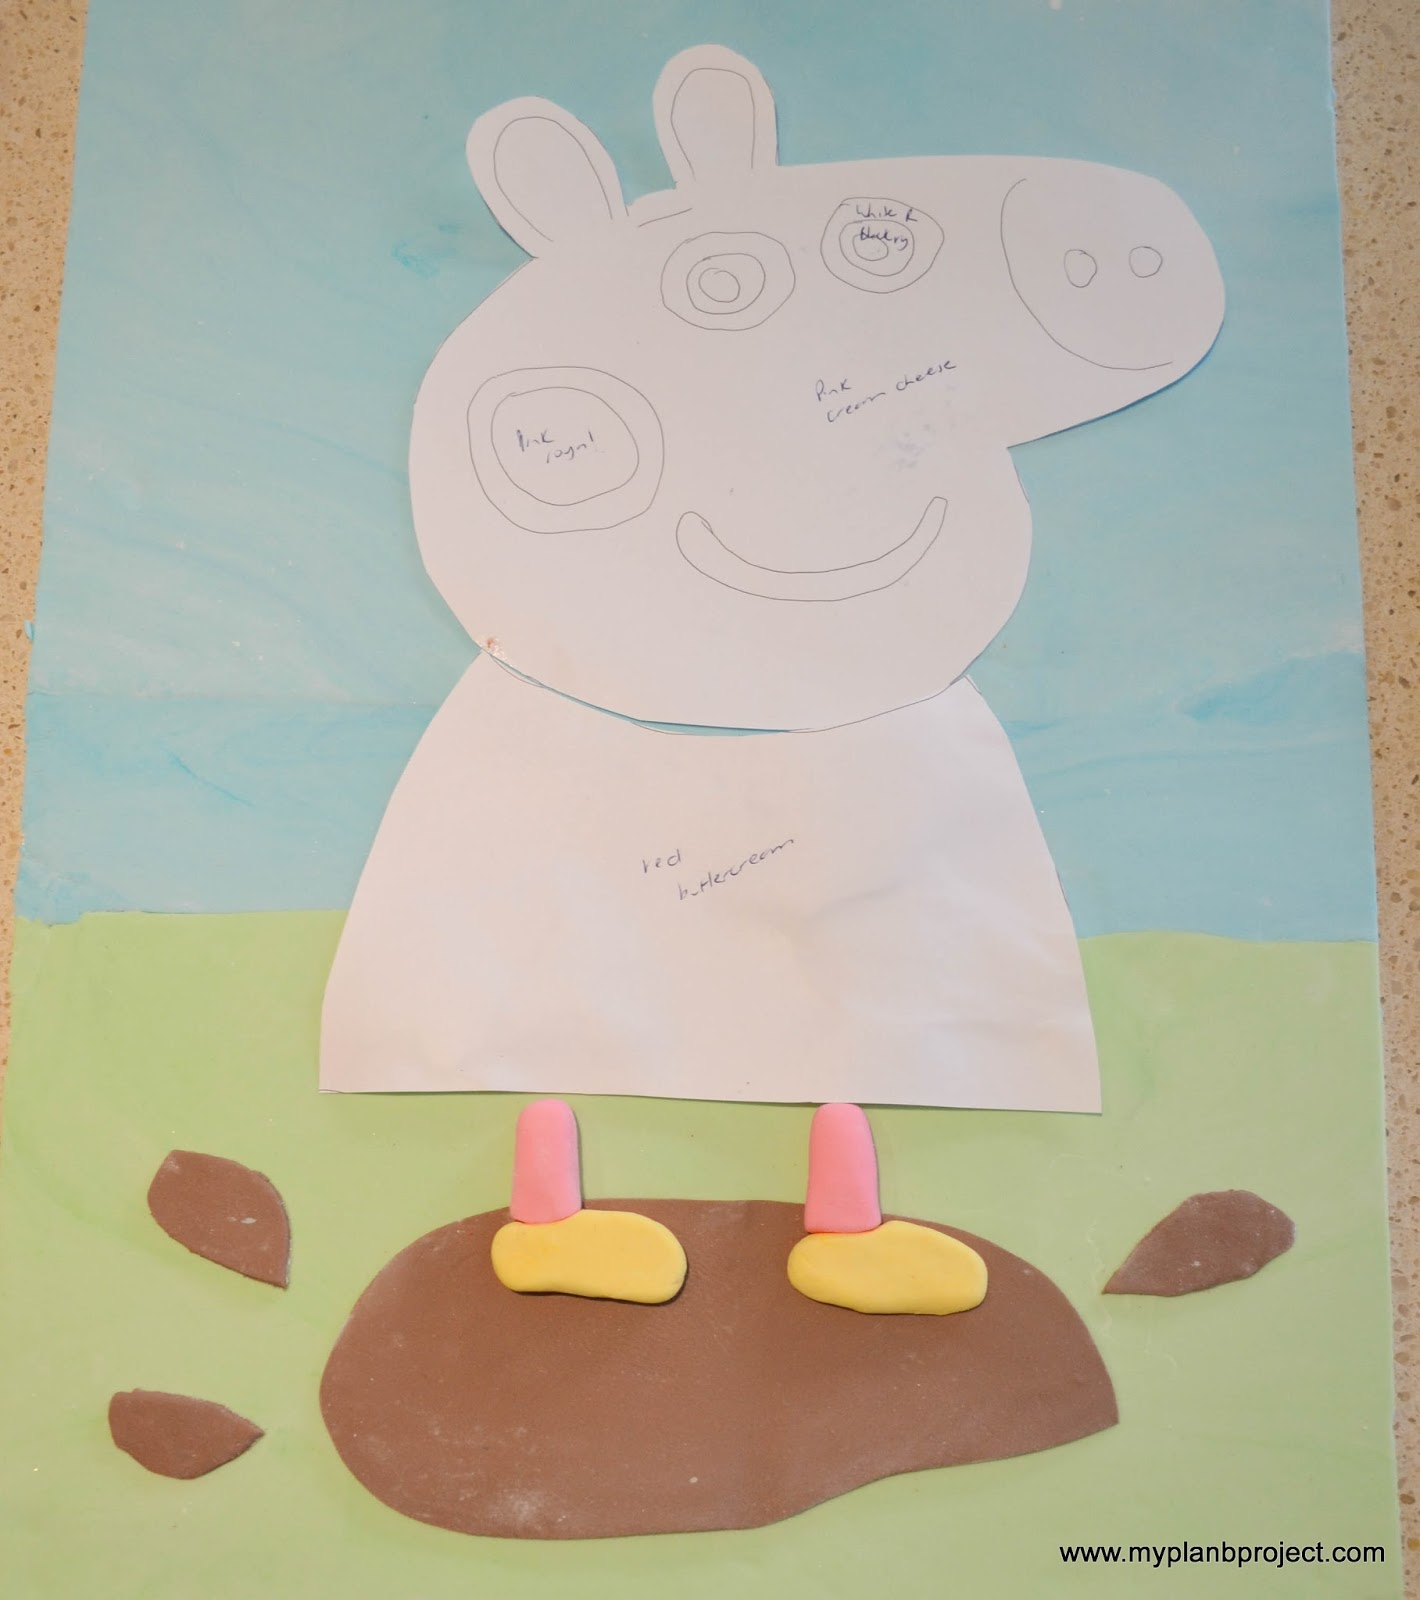 My plan b project peppa pig birthday cake for Peppa pig cake template free